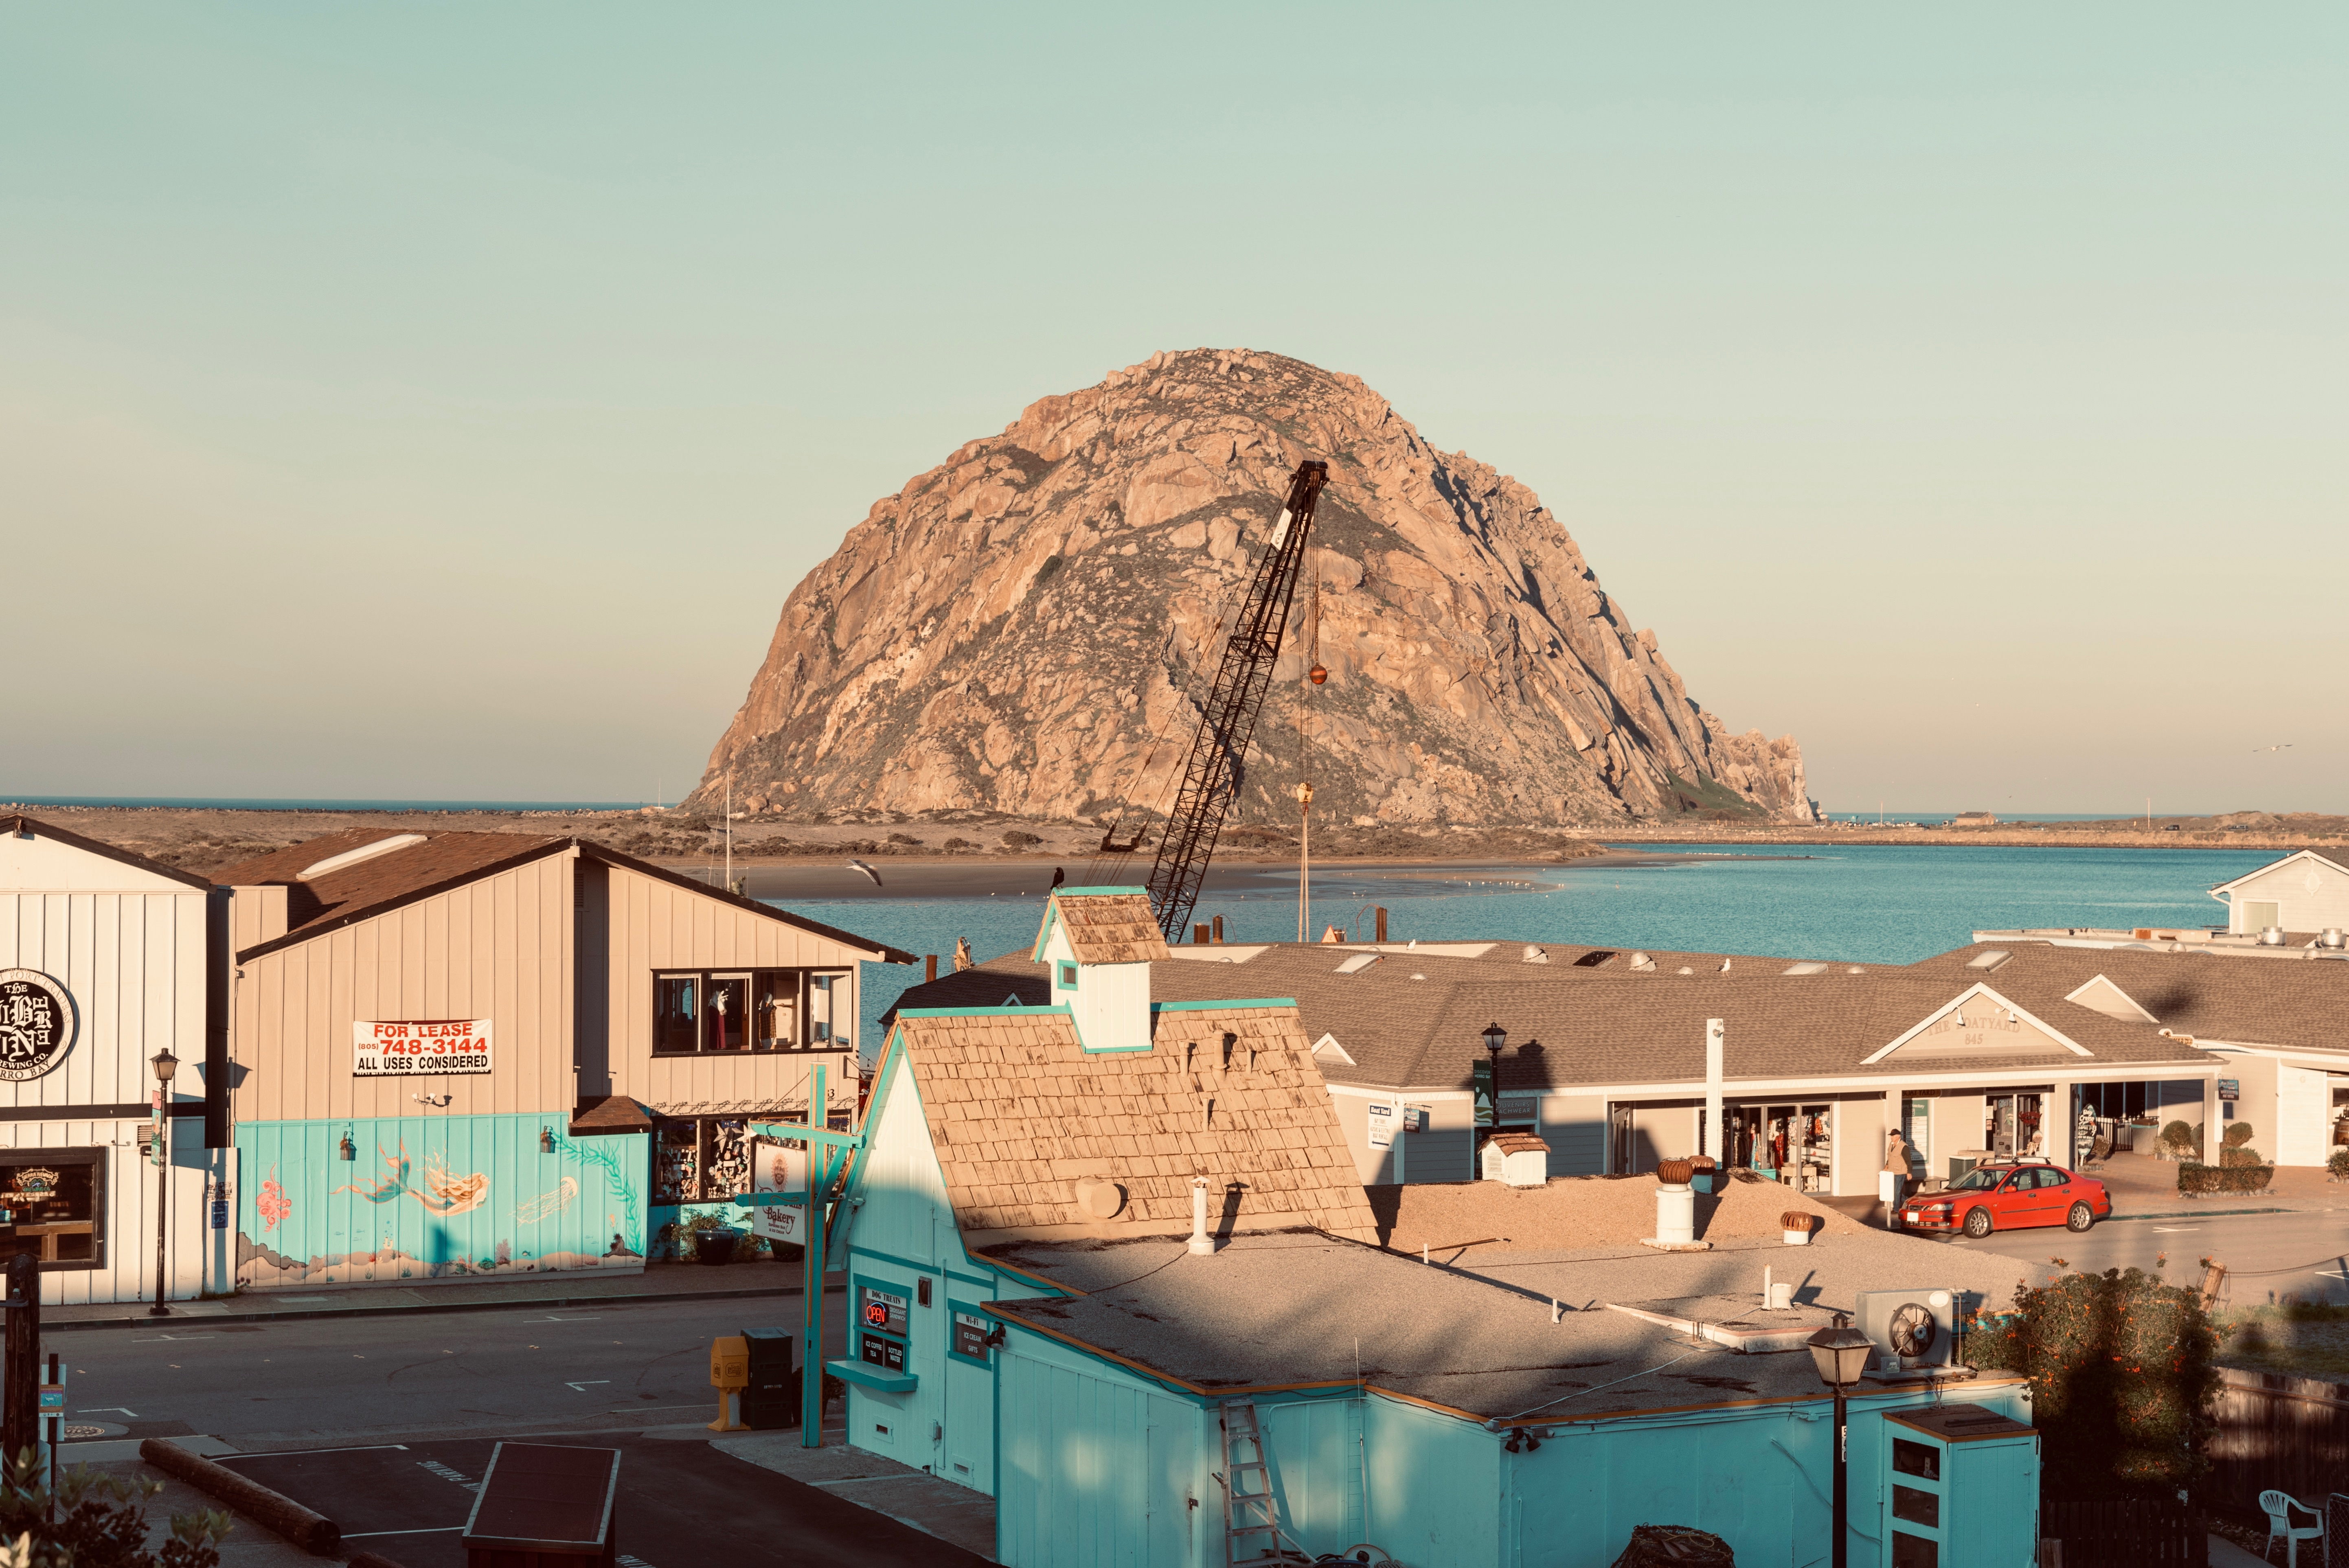 A giant rock protrudes from a bay at dusk. In the foreground, pitched rooftops and colorful buildings.